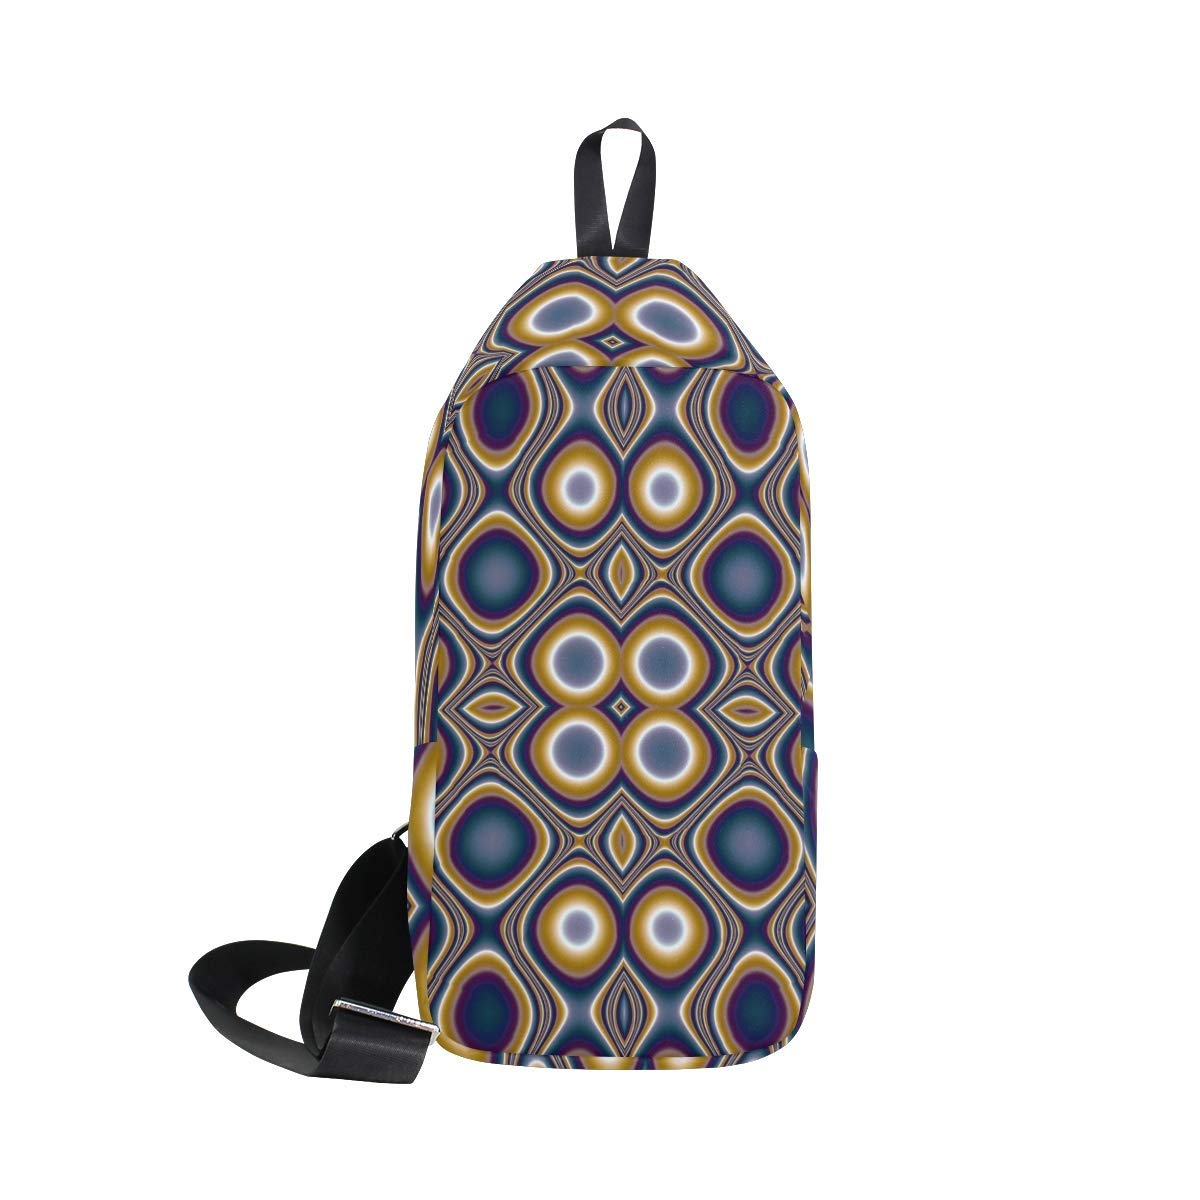 94e6ca0aff Get Quotations · LORVIES Vibrant Pattern Sling Bag Shoulder Chest Cross  Body Backpack Lightweight Casual Daypack for Men Women